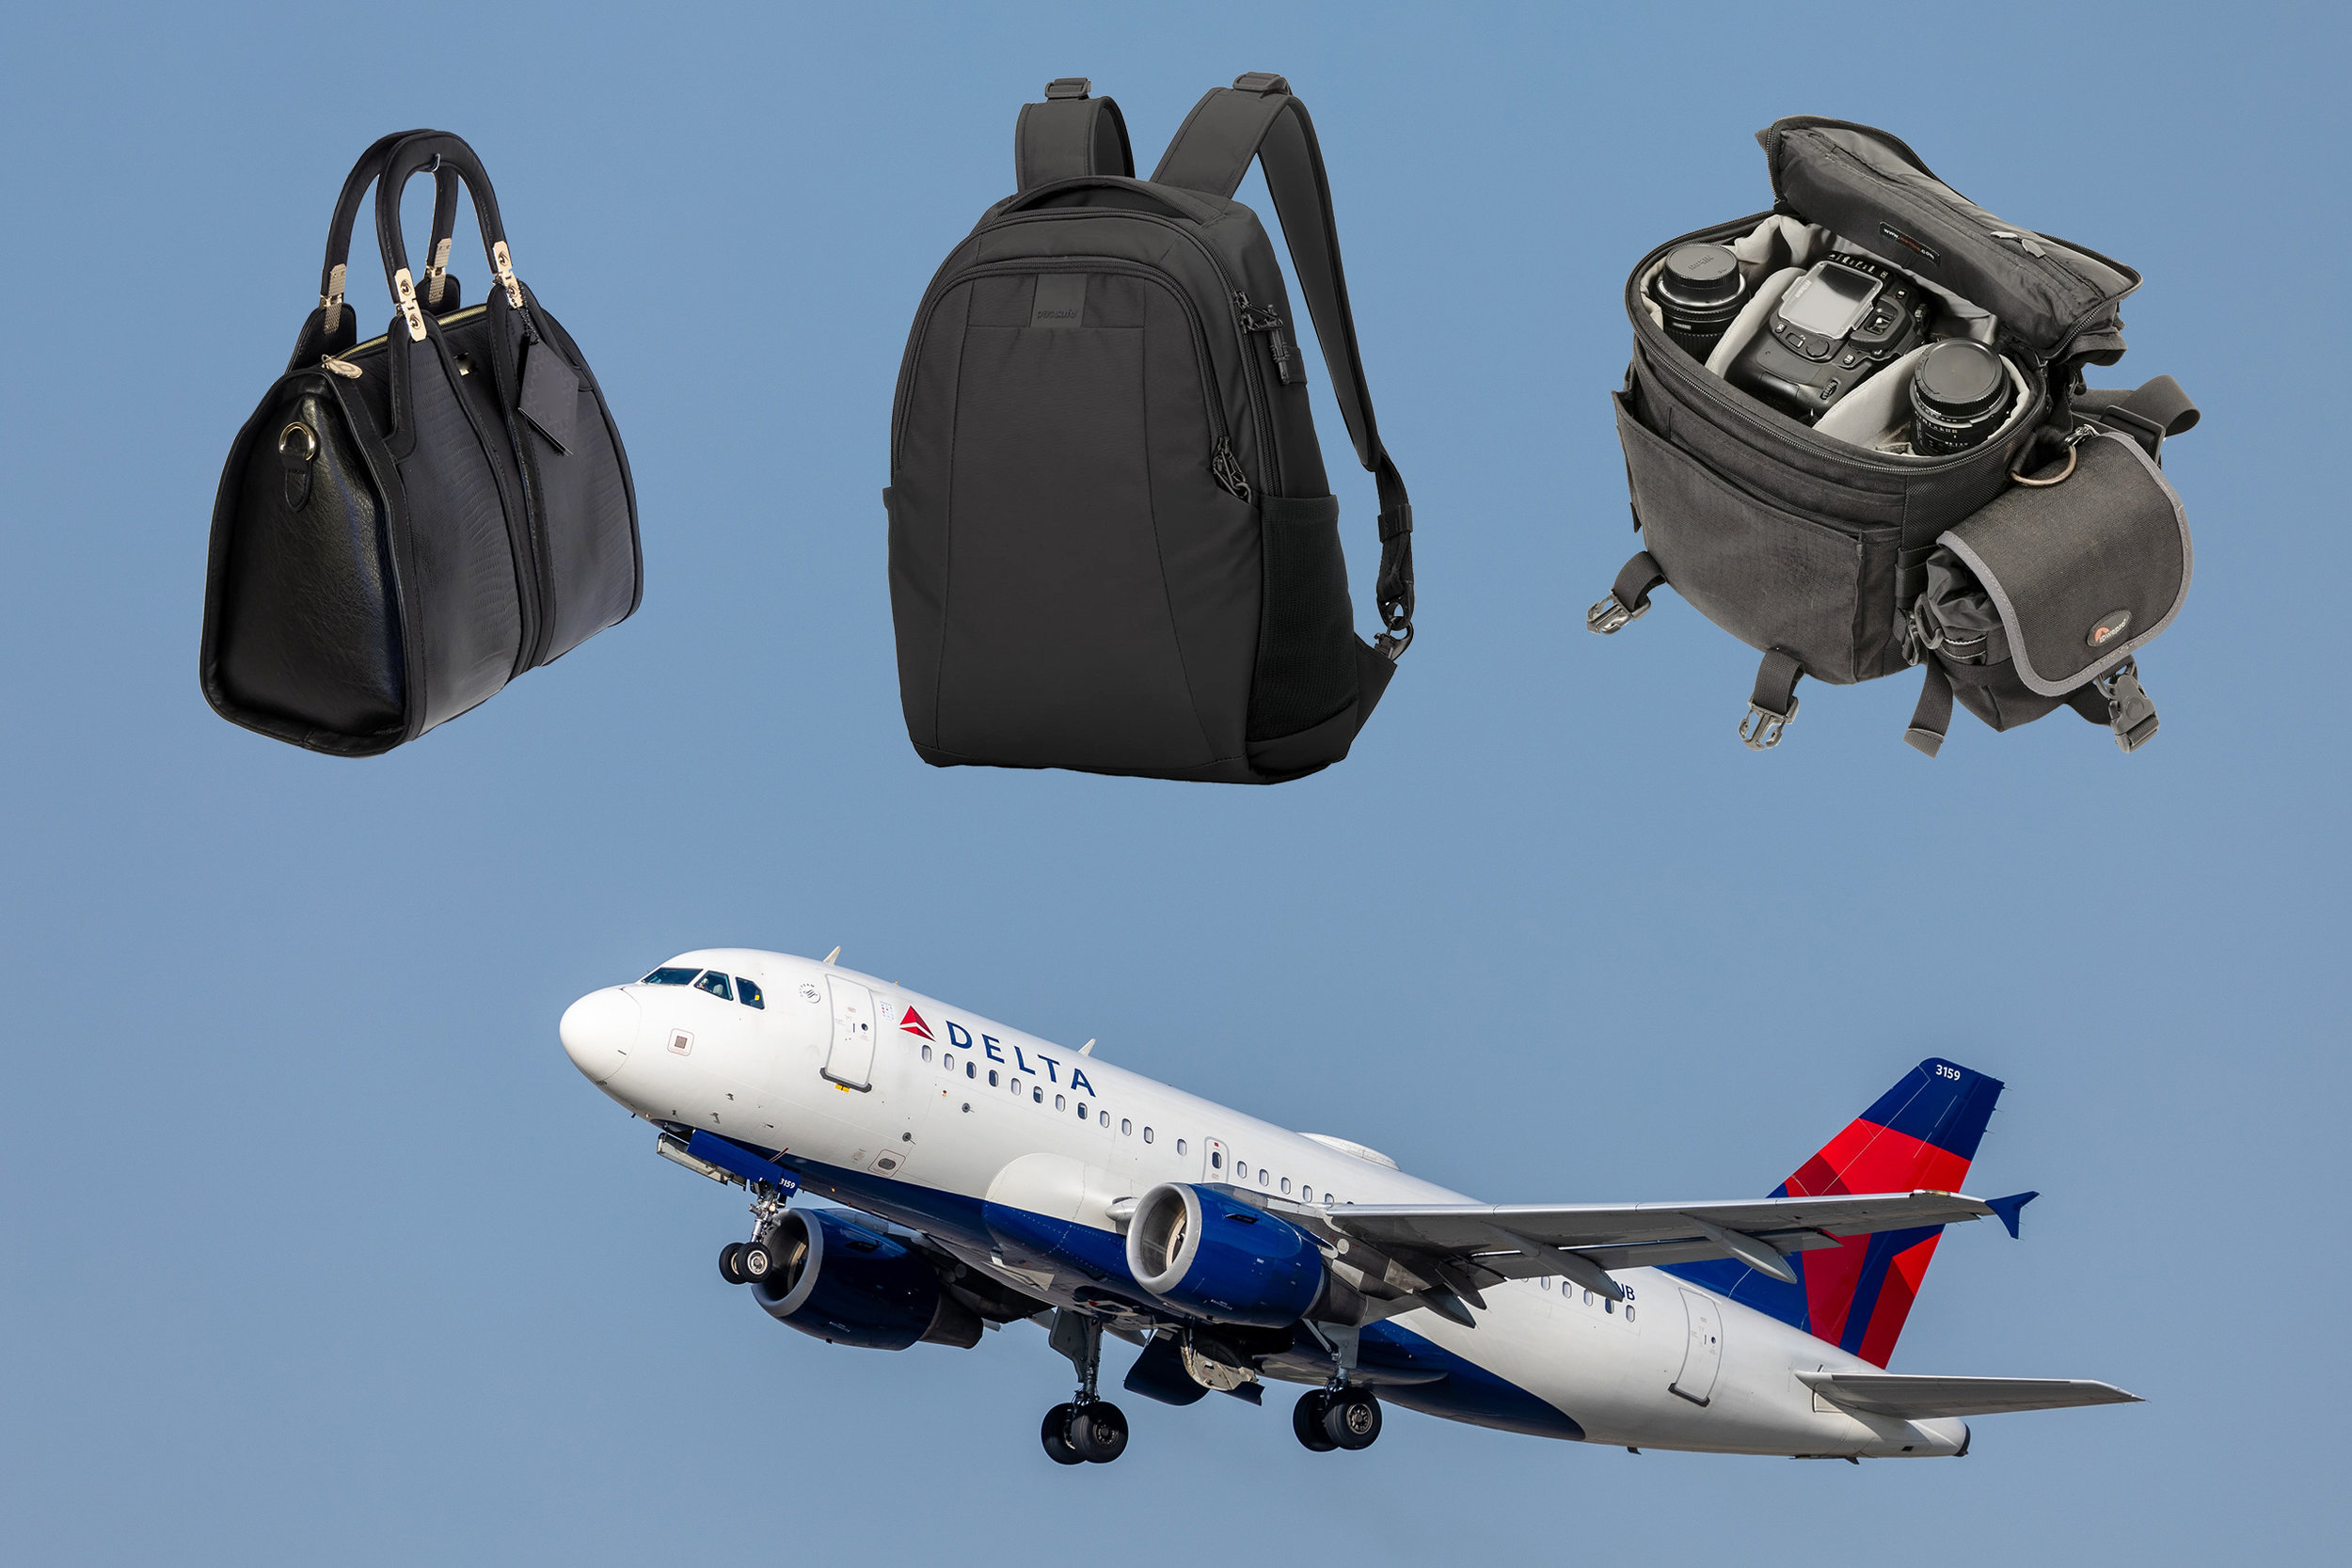 Delta Airlines - Is a backpack considered a personal item?